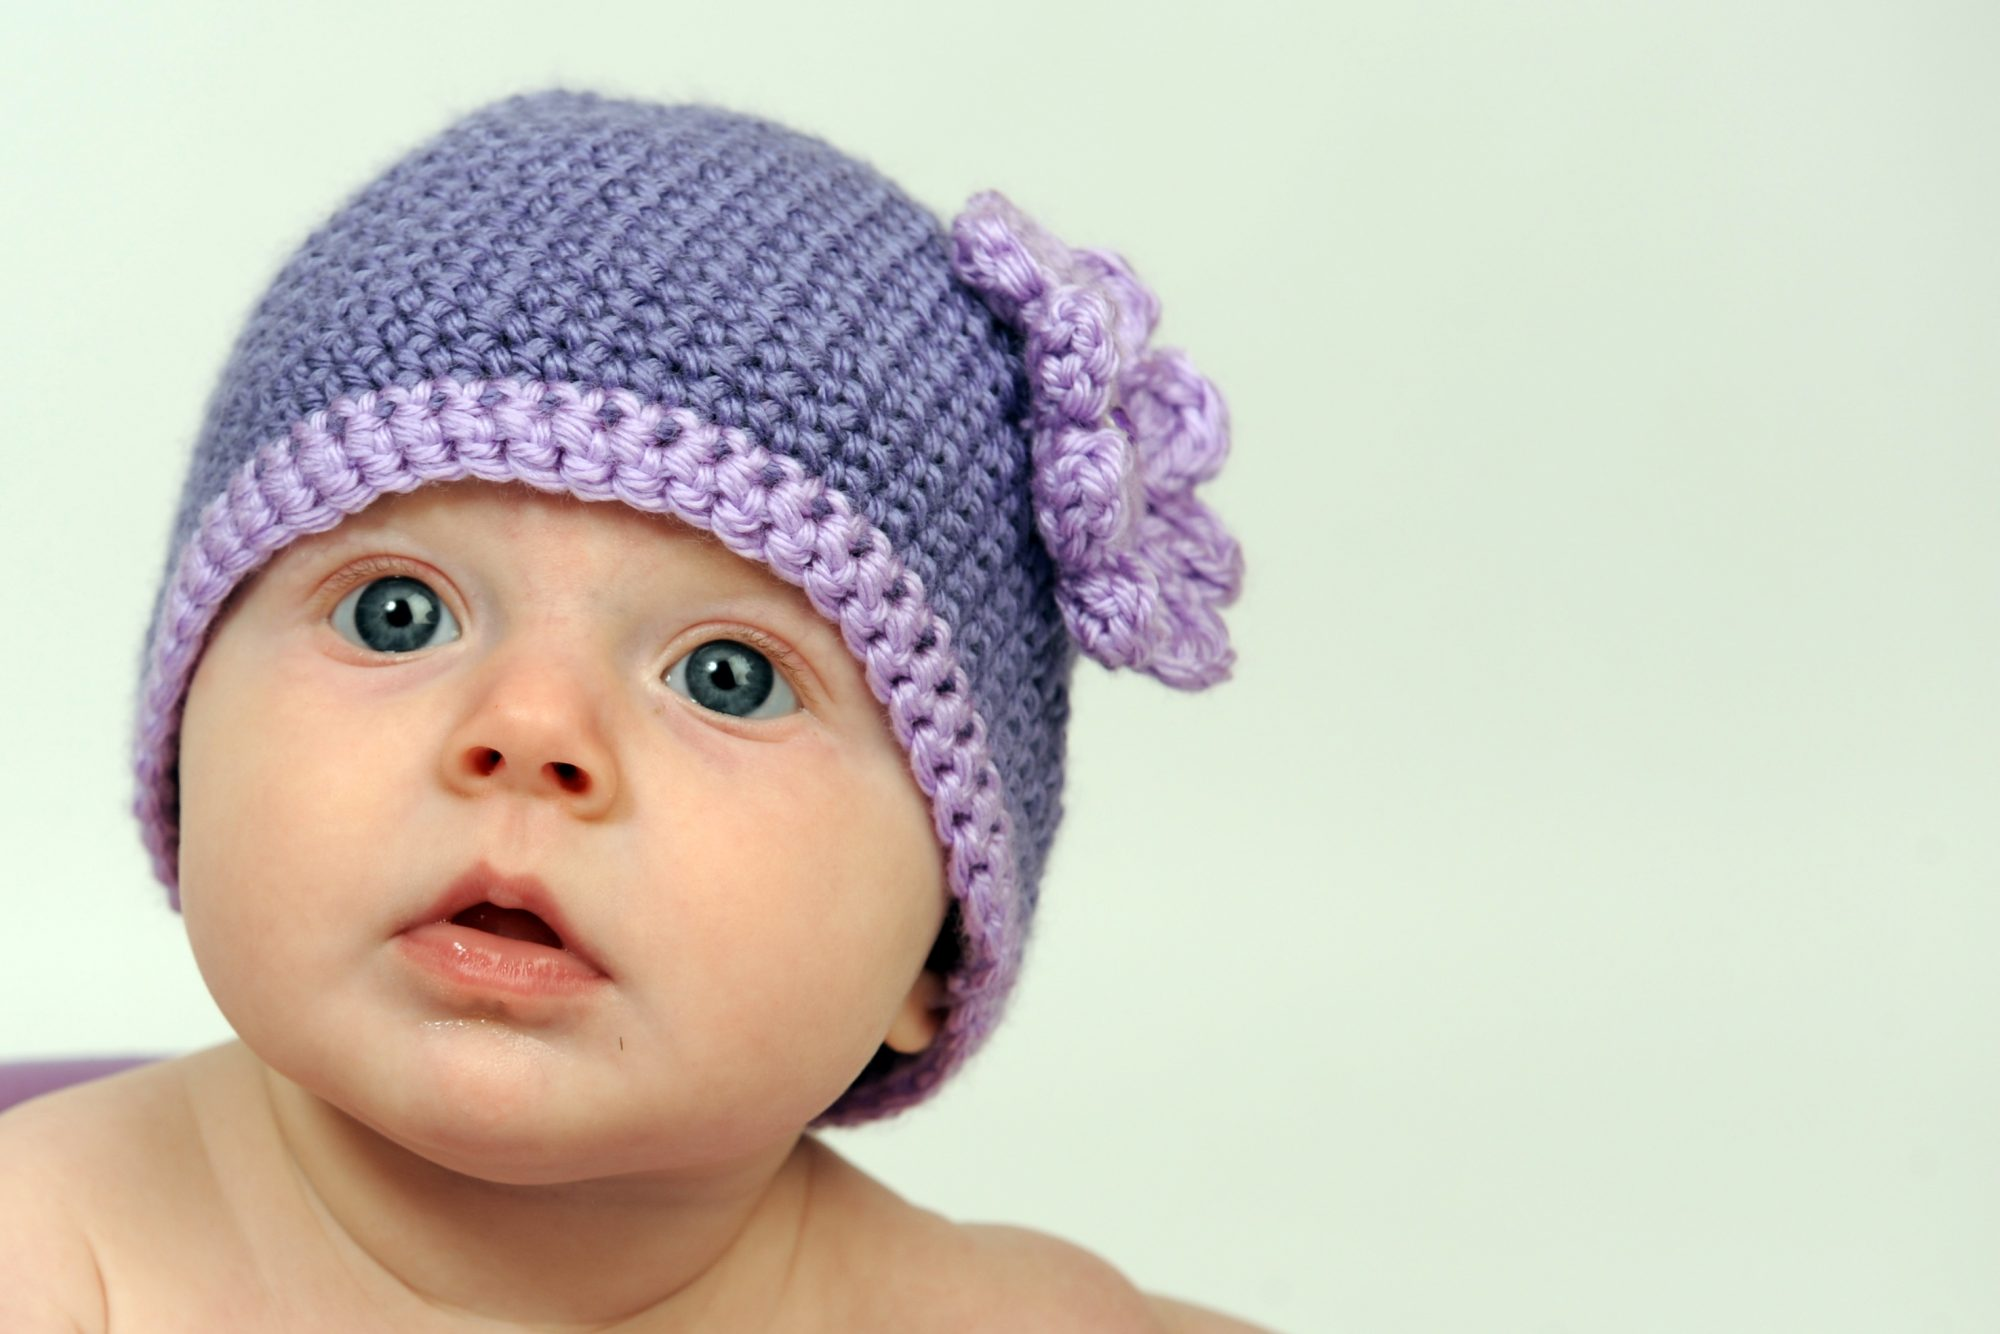 knitters to your needles! oklahoma needs 4,300 purple hats for